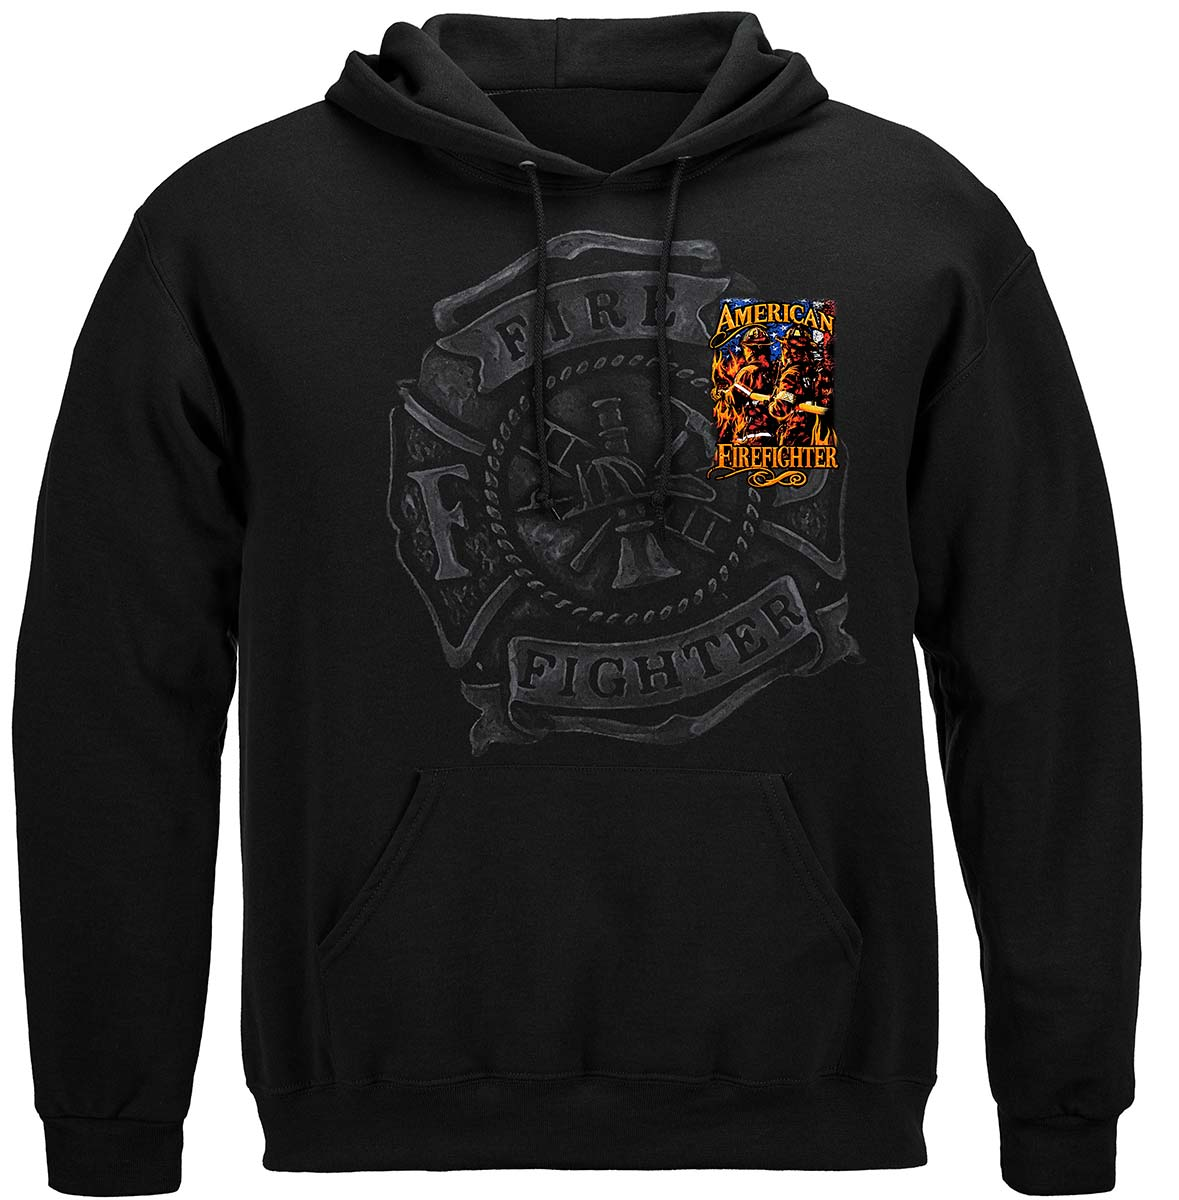 Elite Breed American Firefighter Premium Long Sleeves